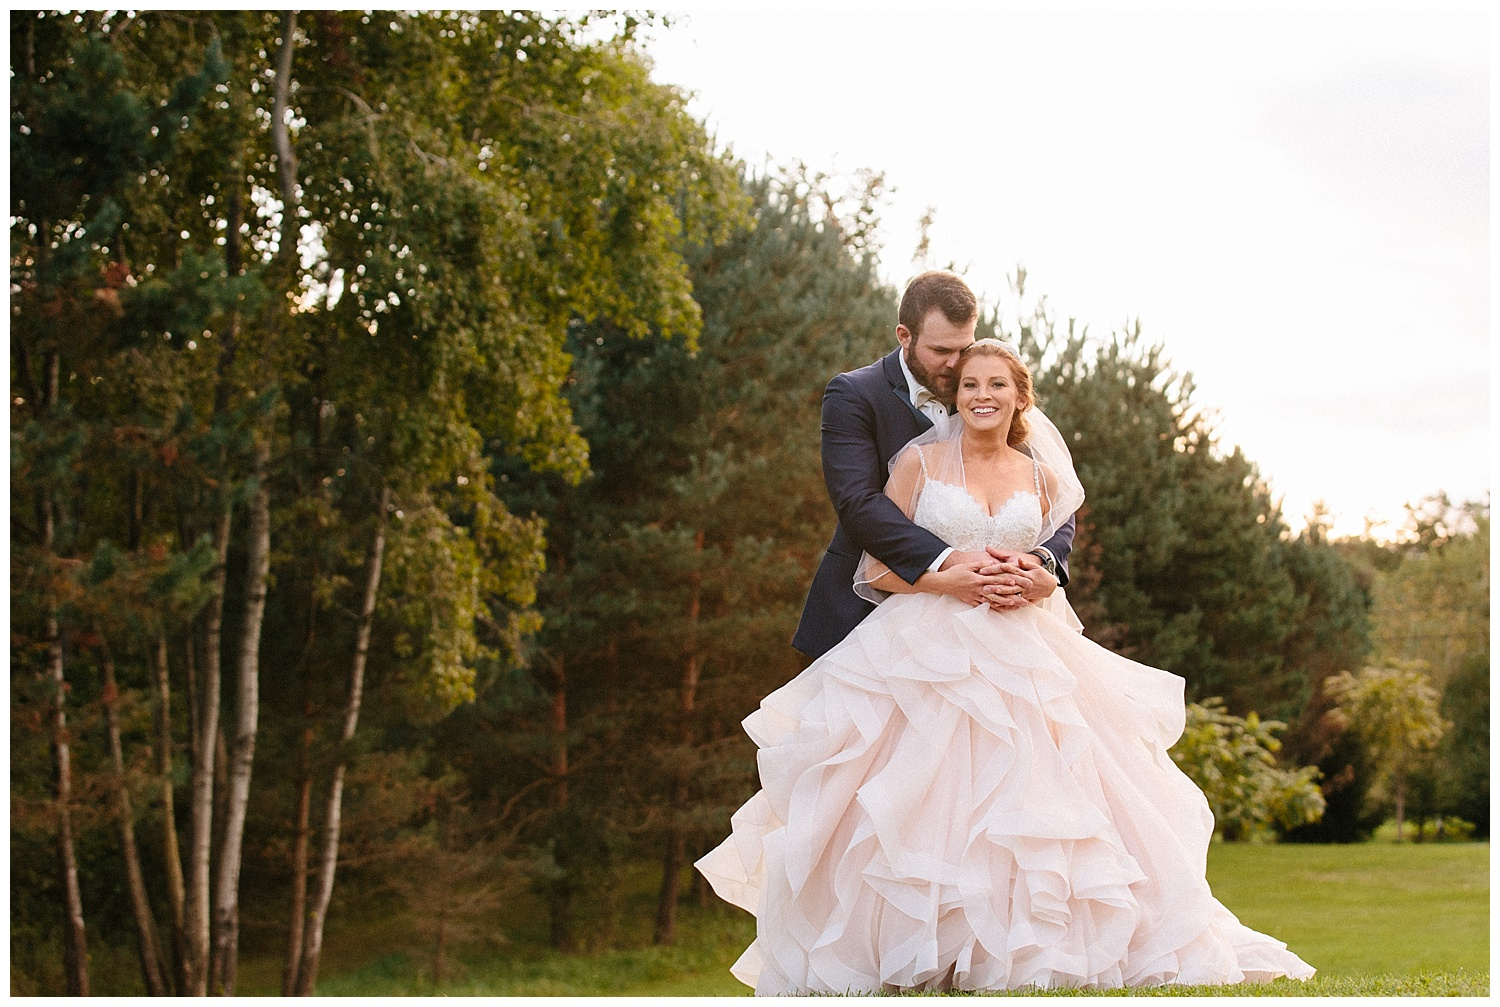 The Lodge at Raven Creek Wedding | Benton, PA | www.redoakweddings.com